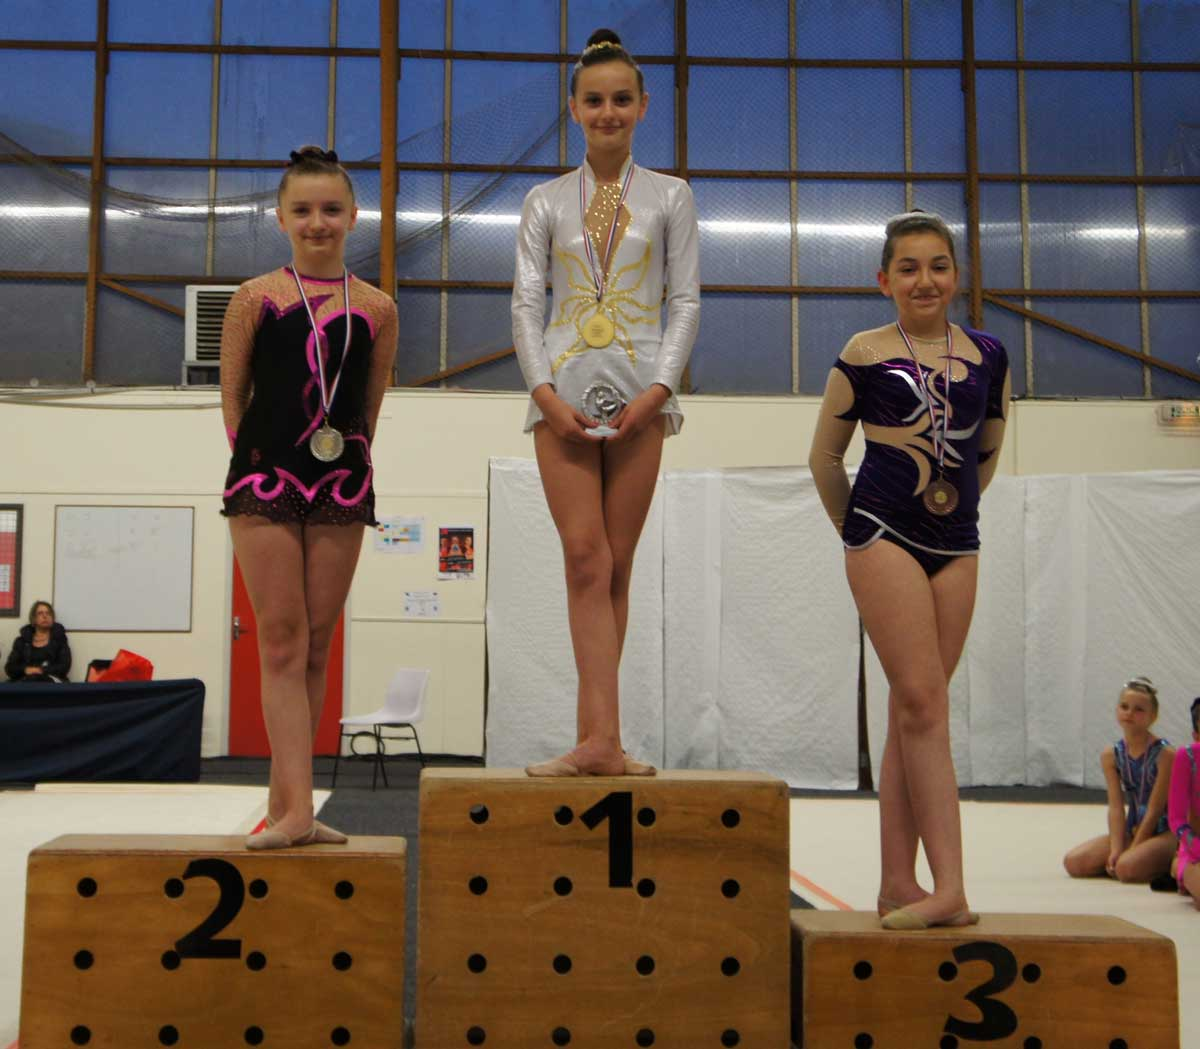 INDIV_District2015_Podium_Honn11-12.jpg